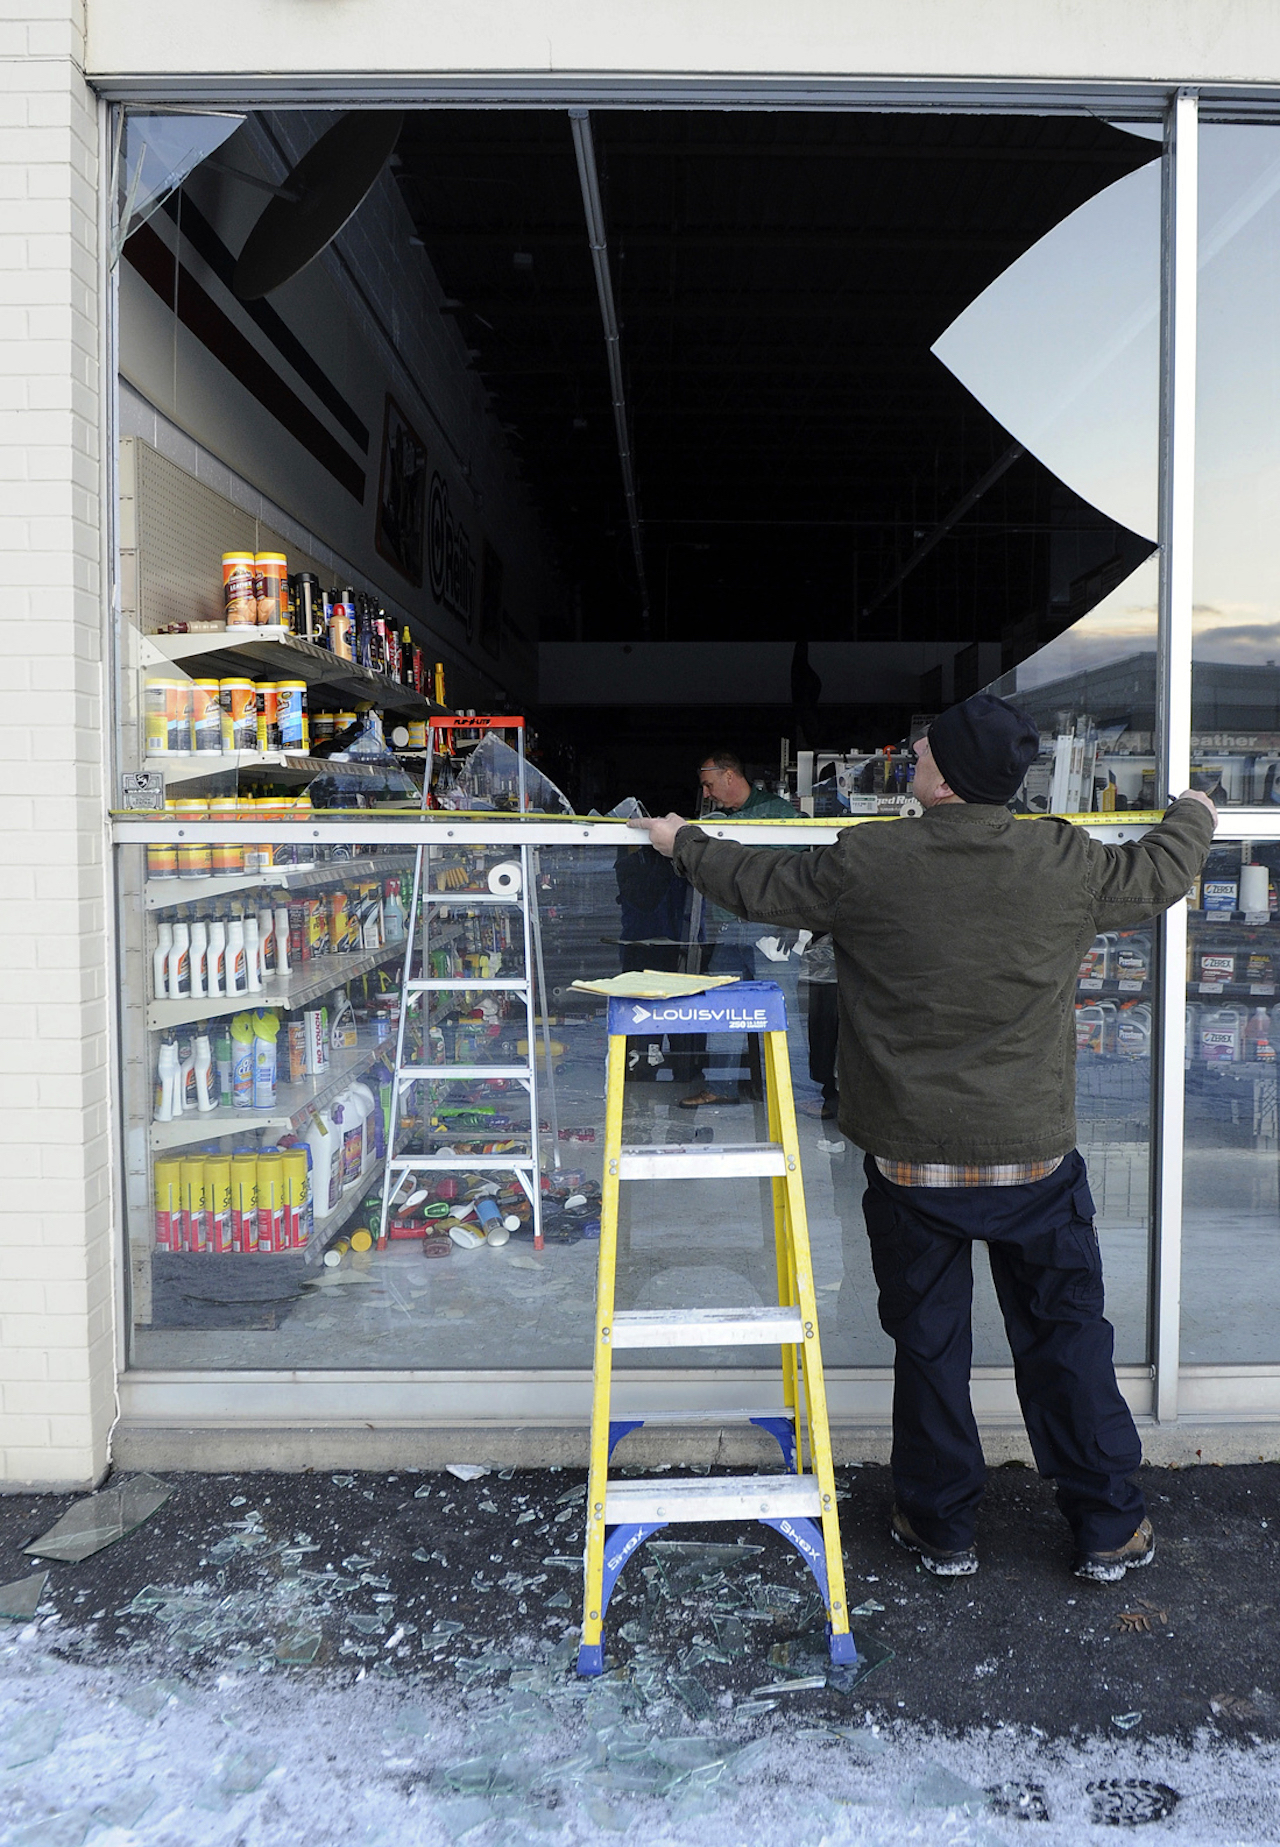 "<div class=""meta image-caption""><div class=""origin-logo origin-image ap""><span>AP</span></div><span class=""caption-text"">Dennis Keeling of Instant Services measures to replace broken glass at an auto parts store in Anchorage following the morning's earthquake which caused damage to the local area. (AP Photo/Mike Dinneen)</span></div>"